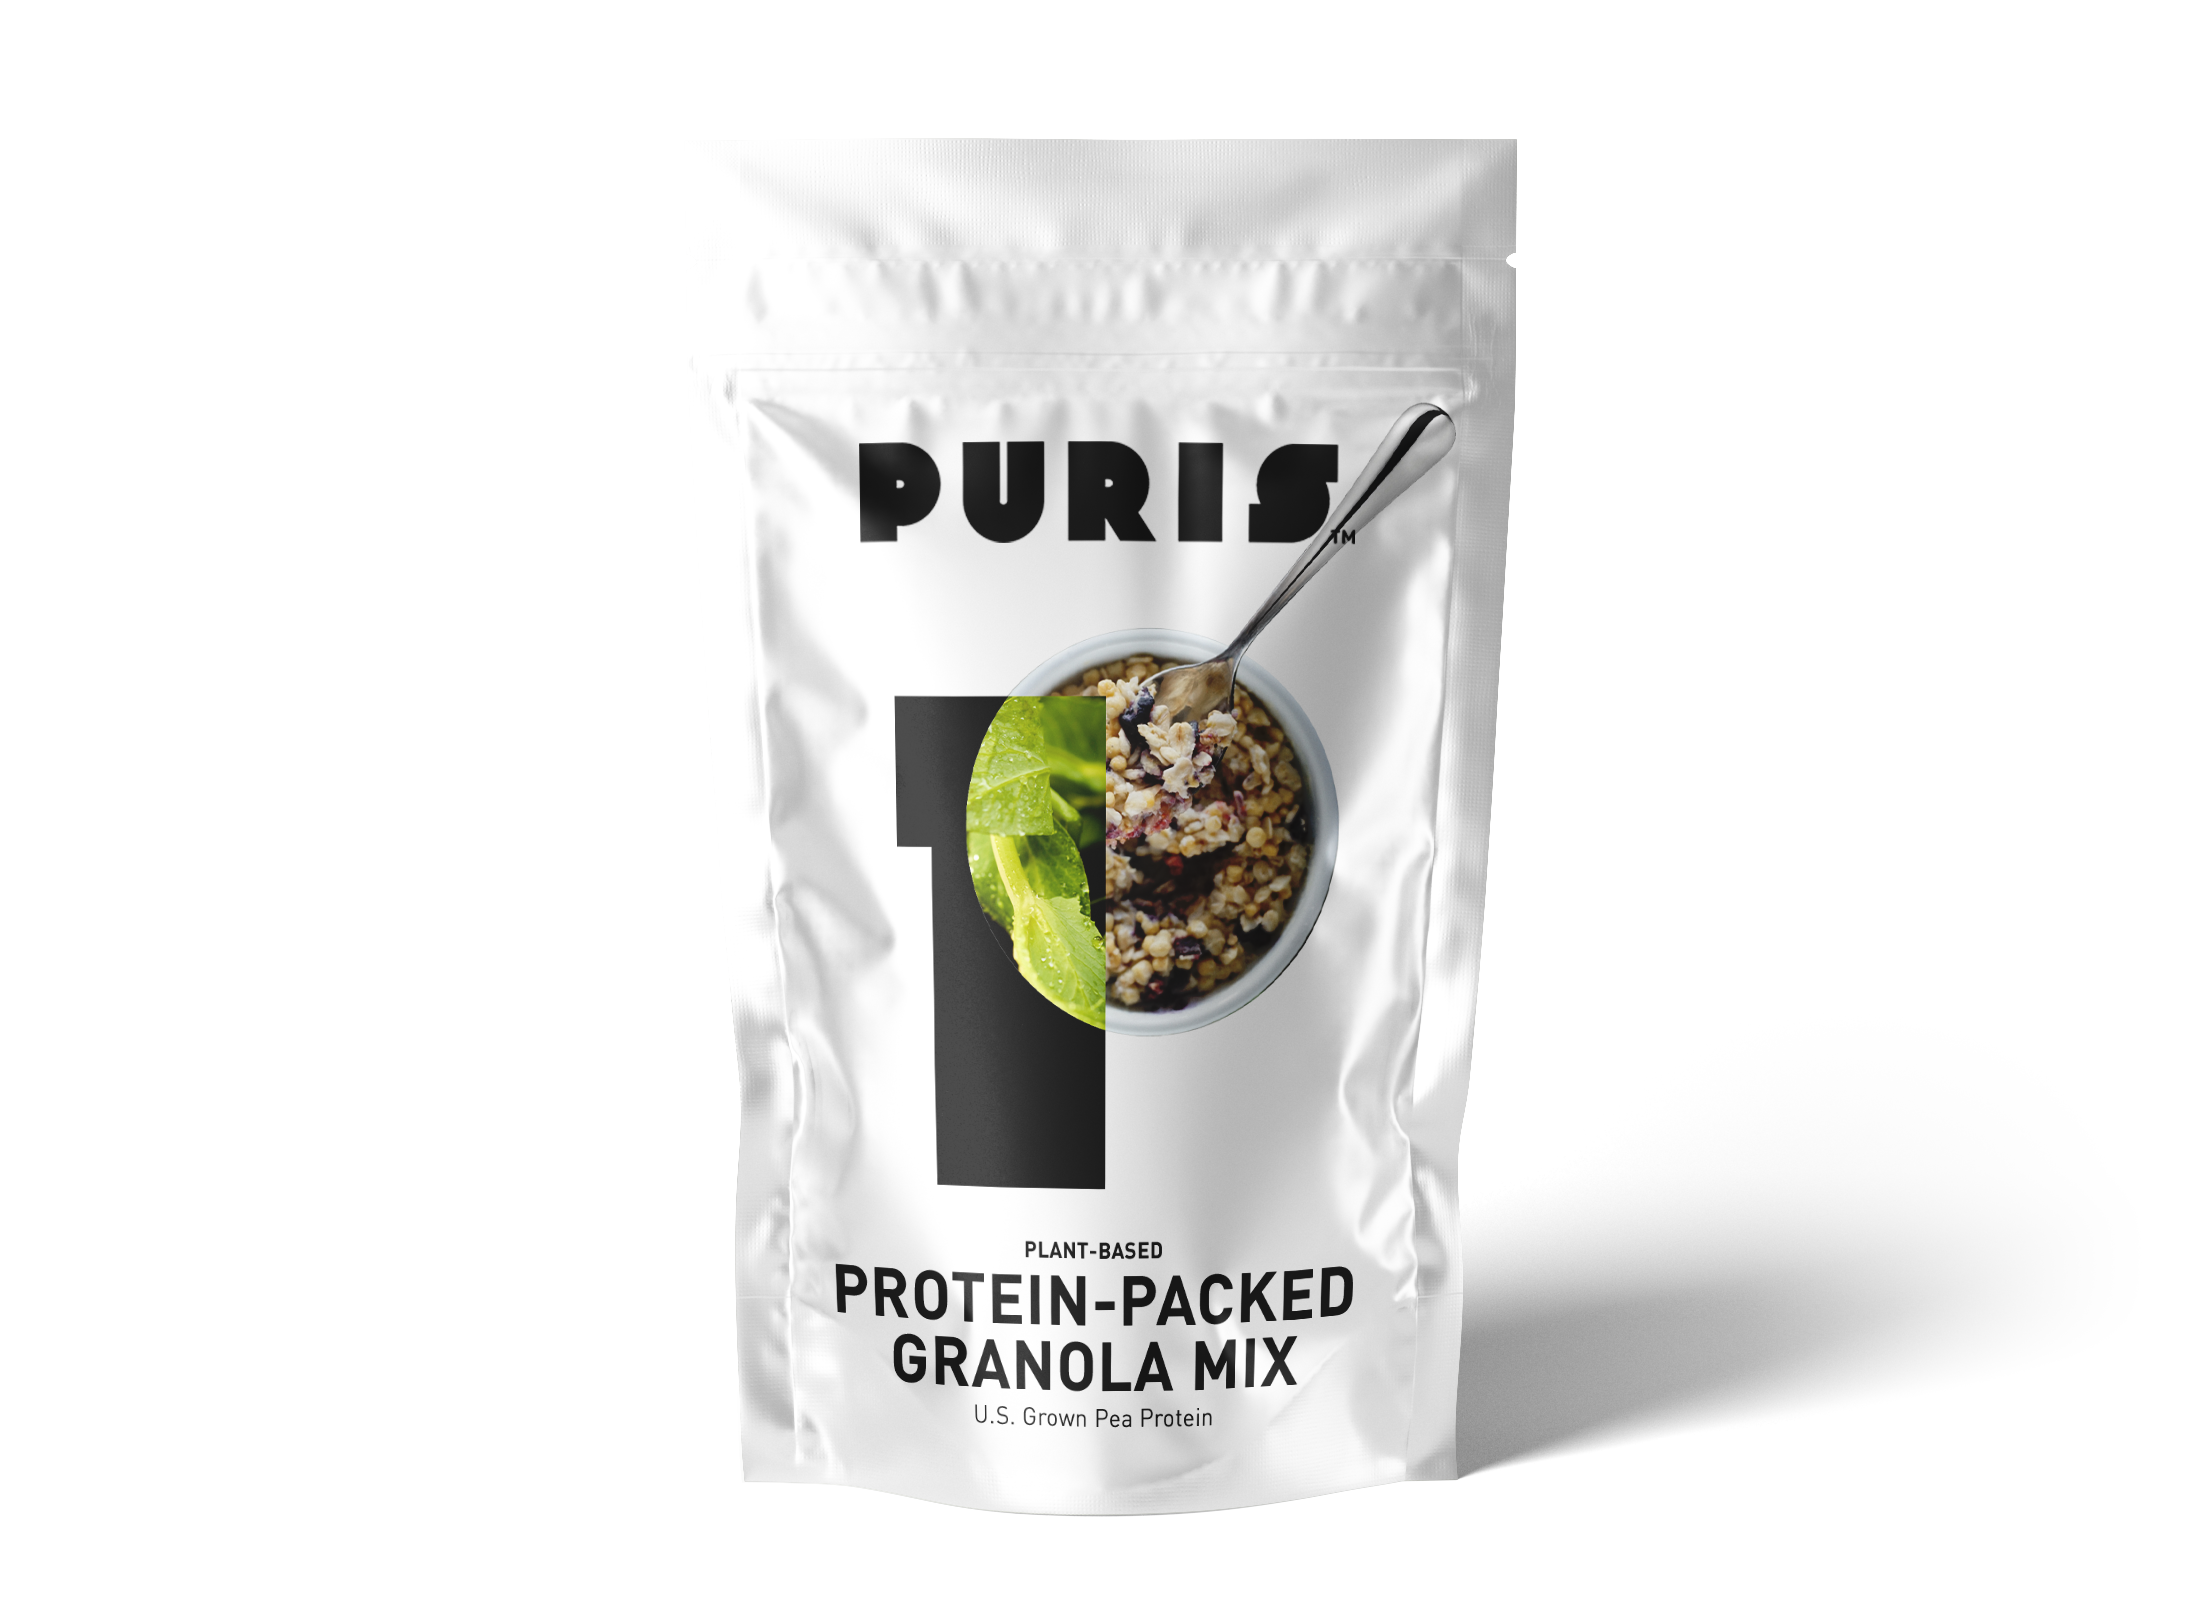 PURIS Granola Mix